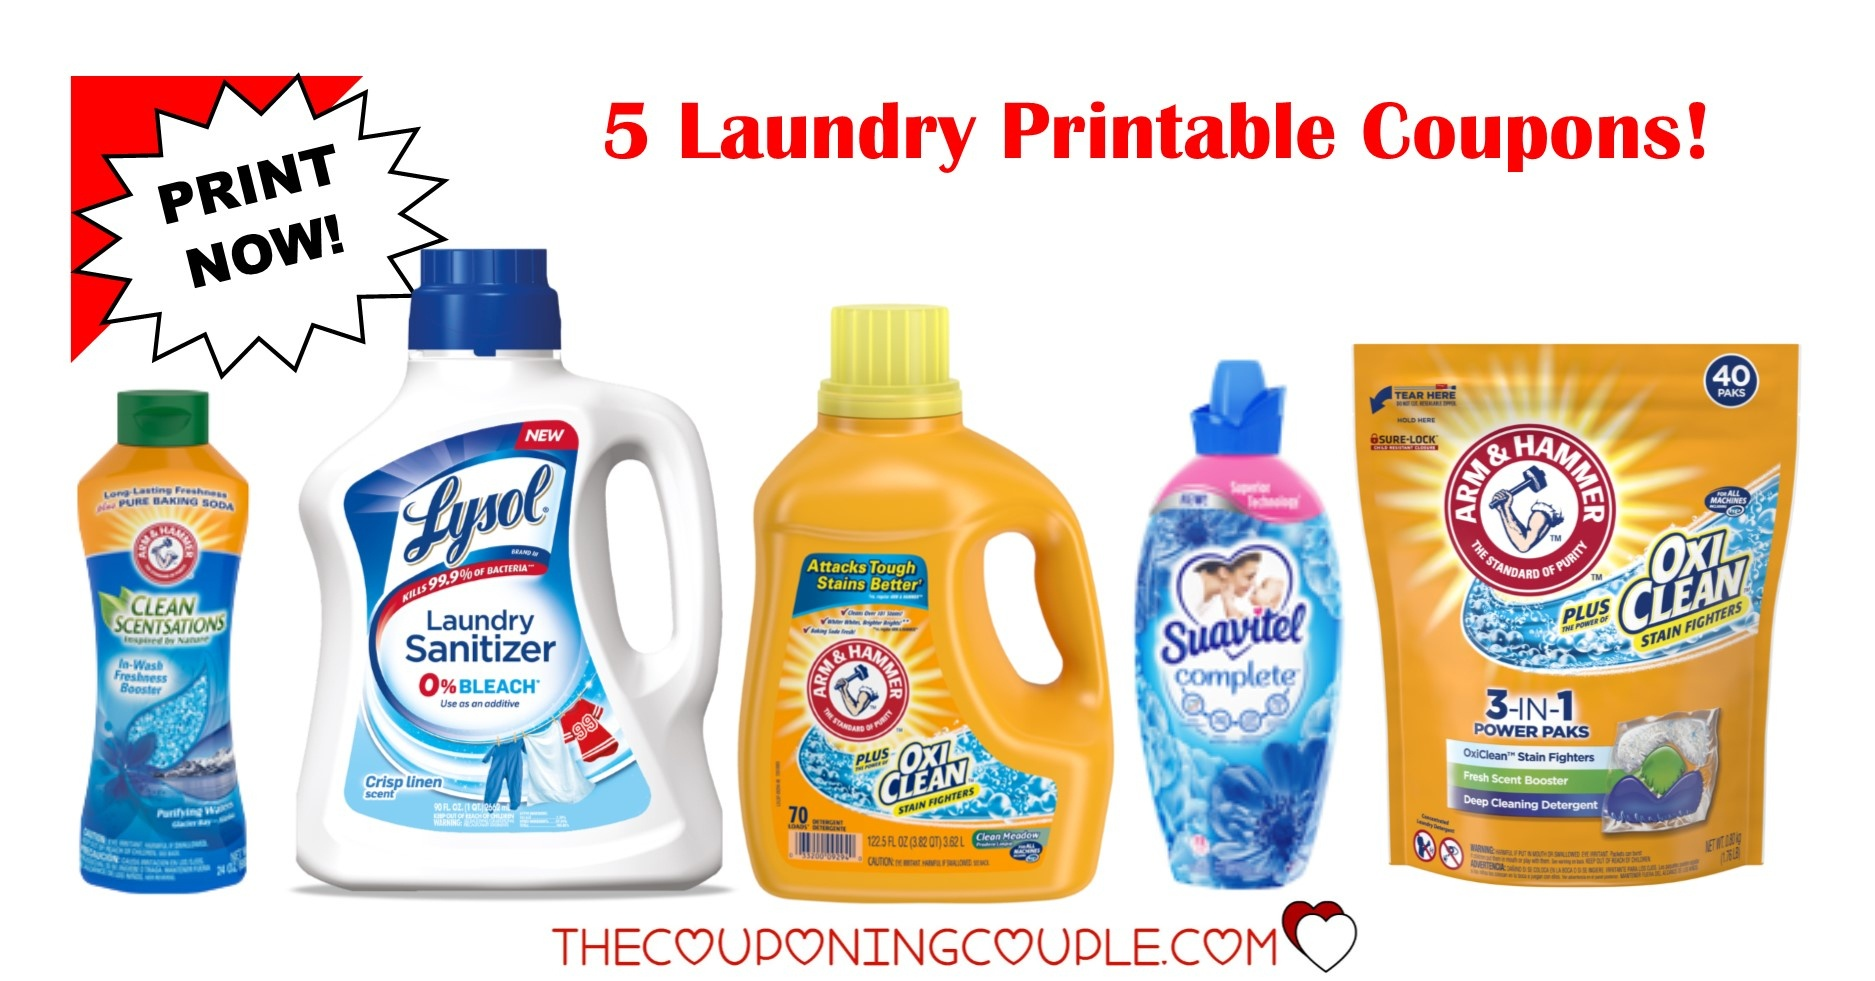 5 Laundry Detergent Printable Coupons ~ $5.50 In Savings!!! - Free Detergent Coupons Printable